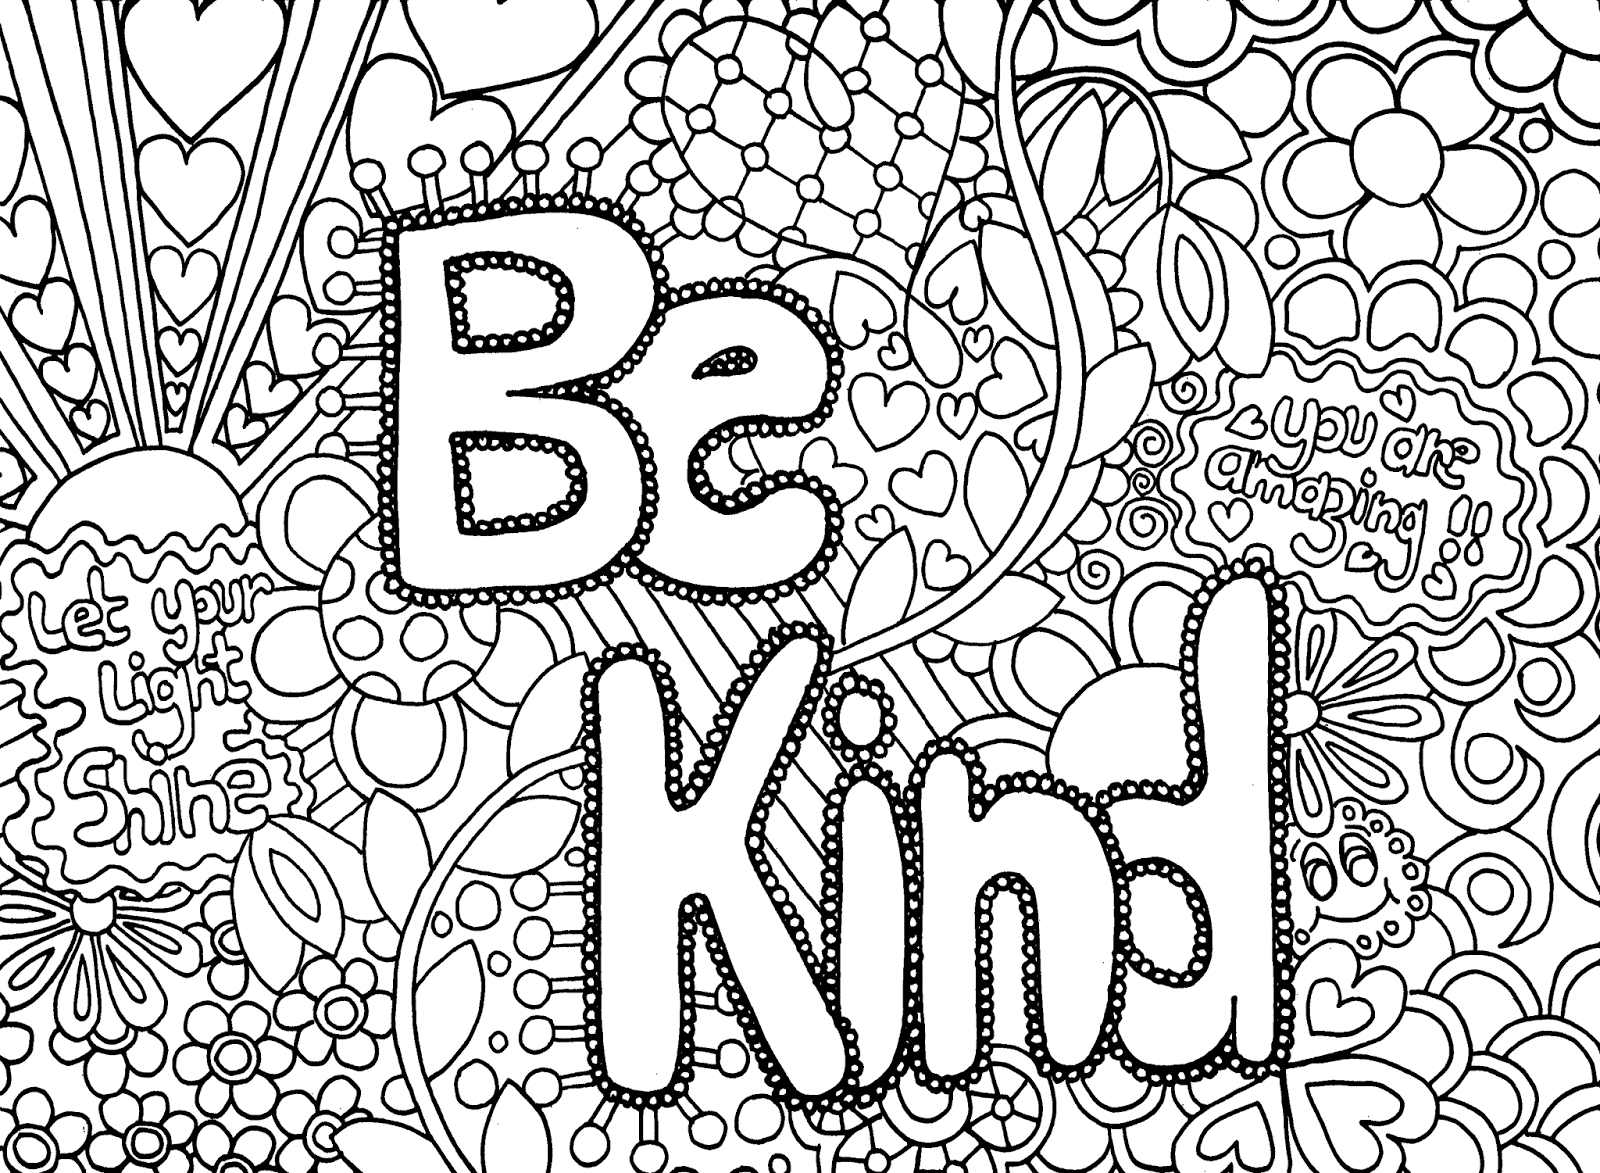 New Abstract Coloring Pages for Teenagers Difficult Gallery Collection Of Snowflake Coloring Pages for Adults Coloring Pages Inspiring Printable